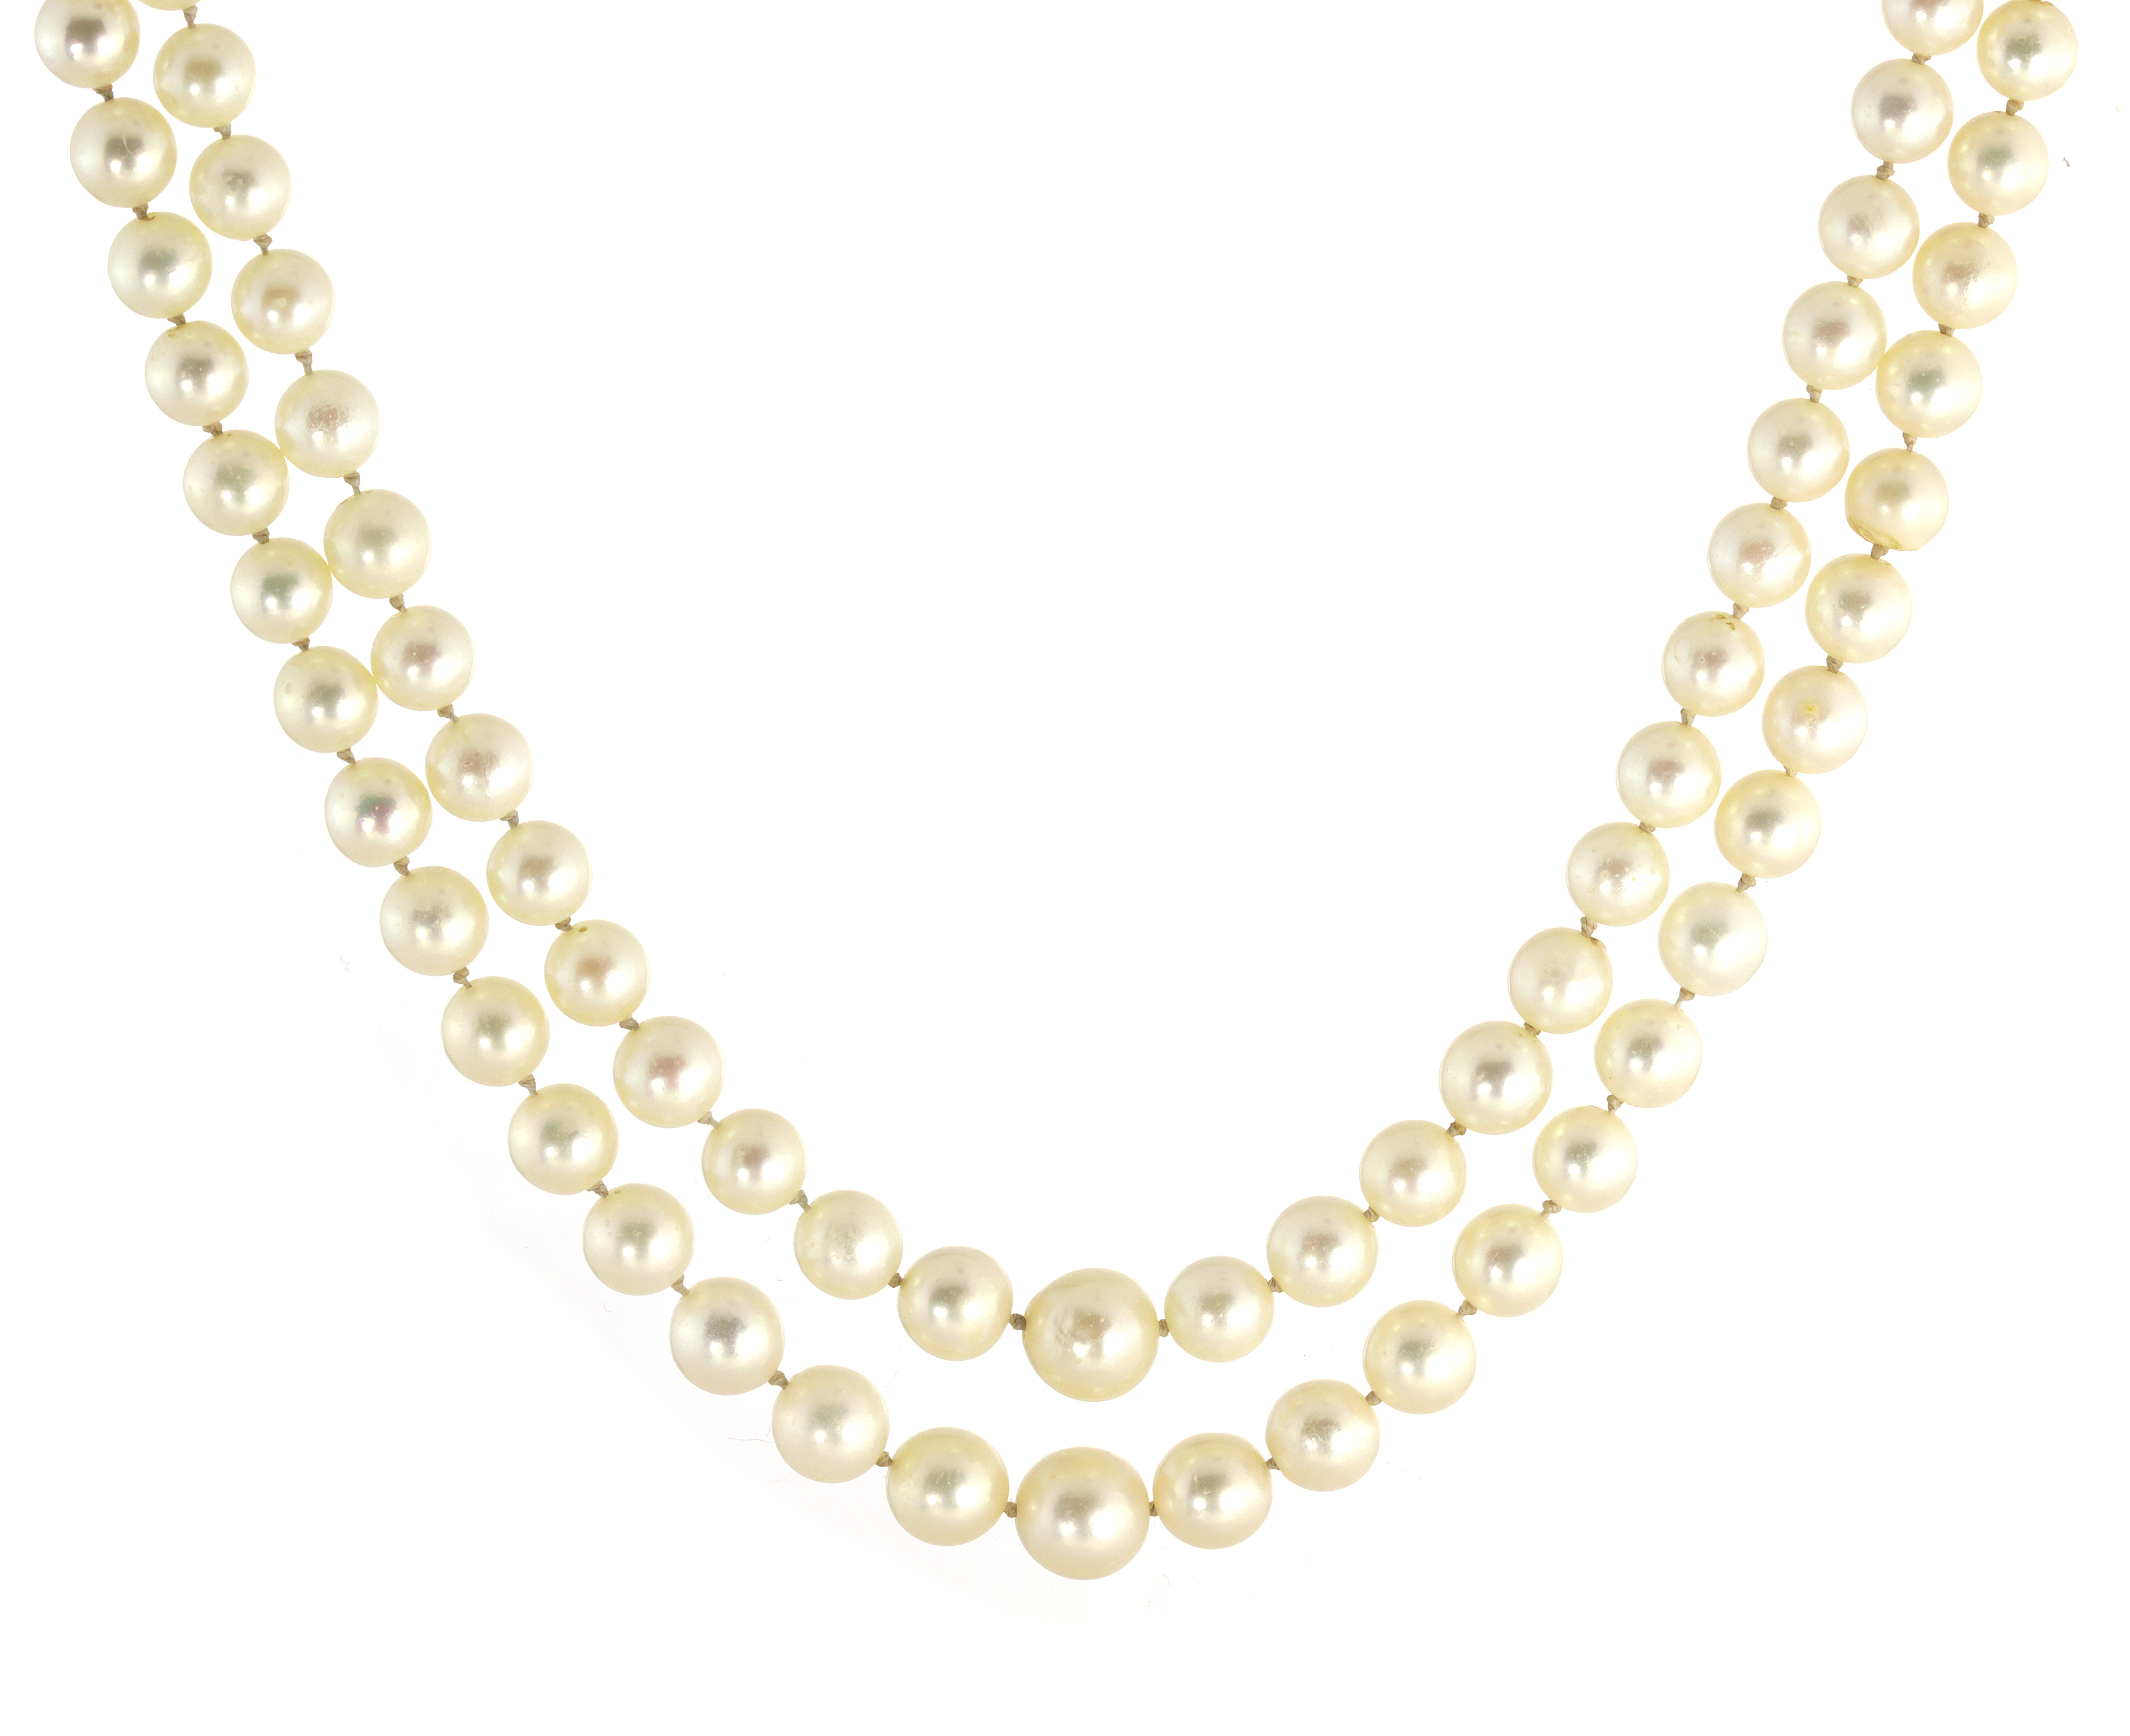 AN ANTIQUE TWO ROW PEARL, DIAMOND AND SAPPHIRE NECKLACE in white gold or platinum, comprising two